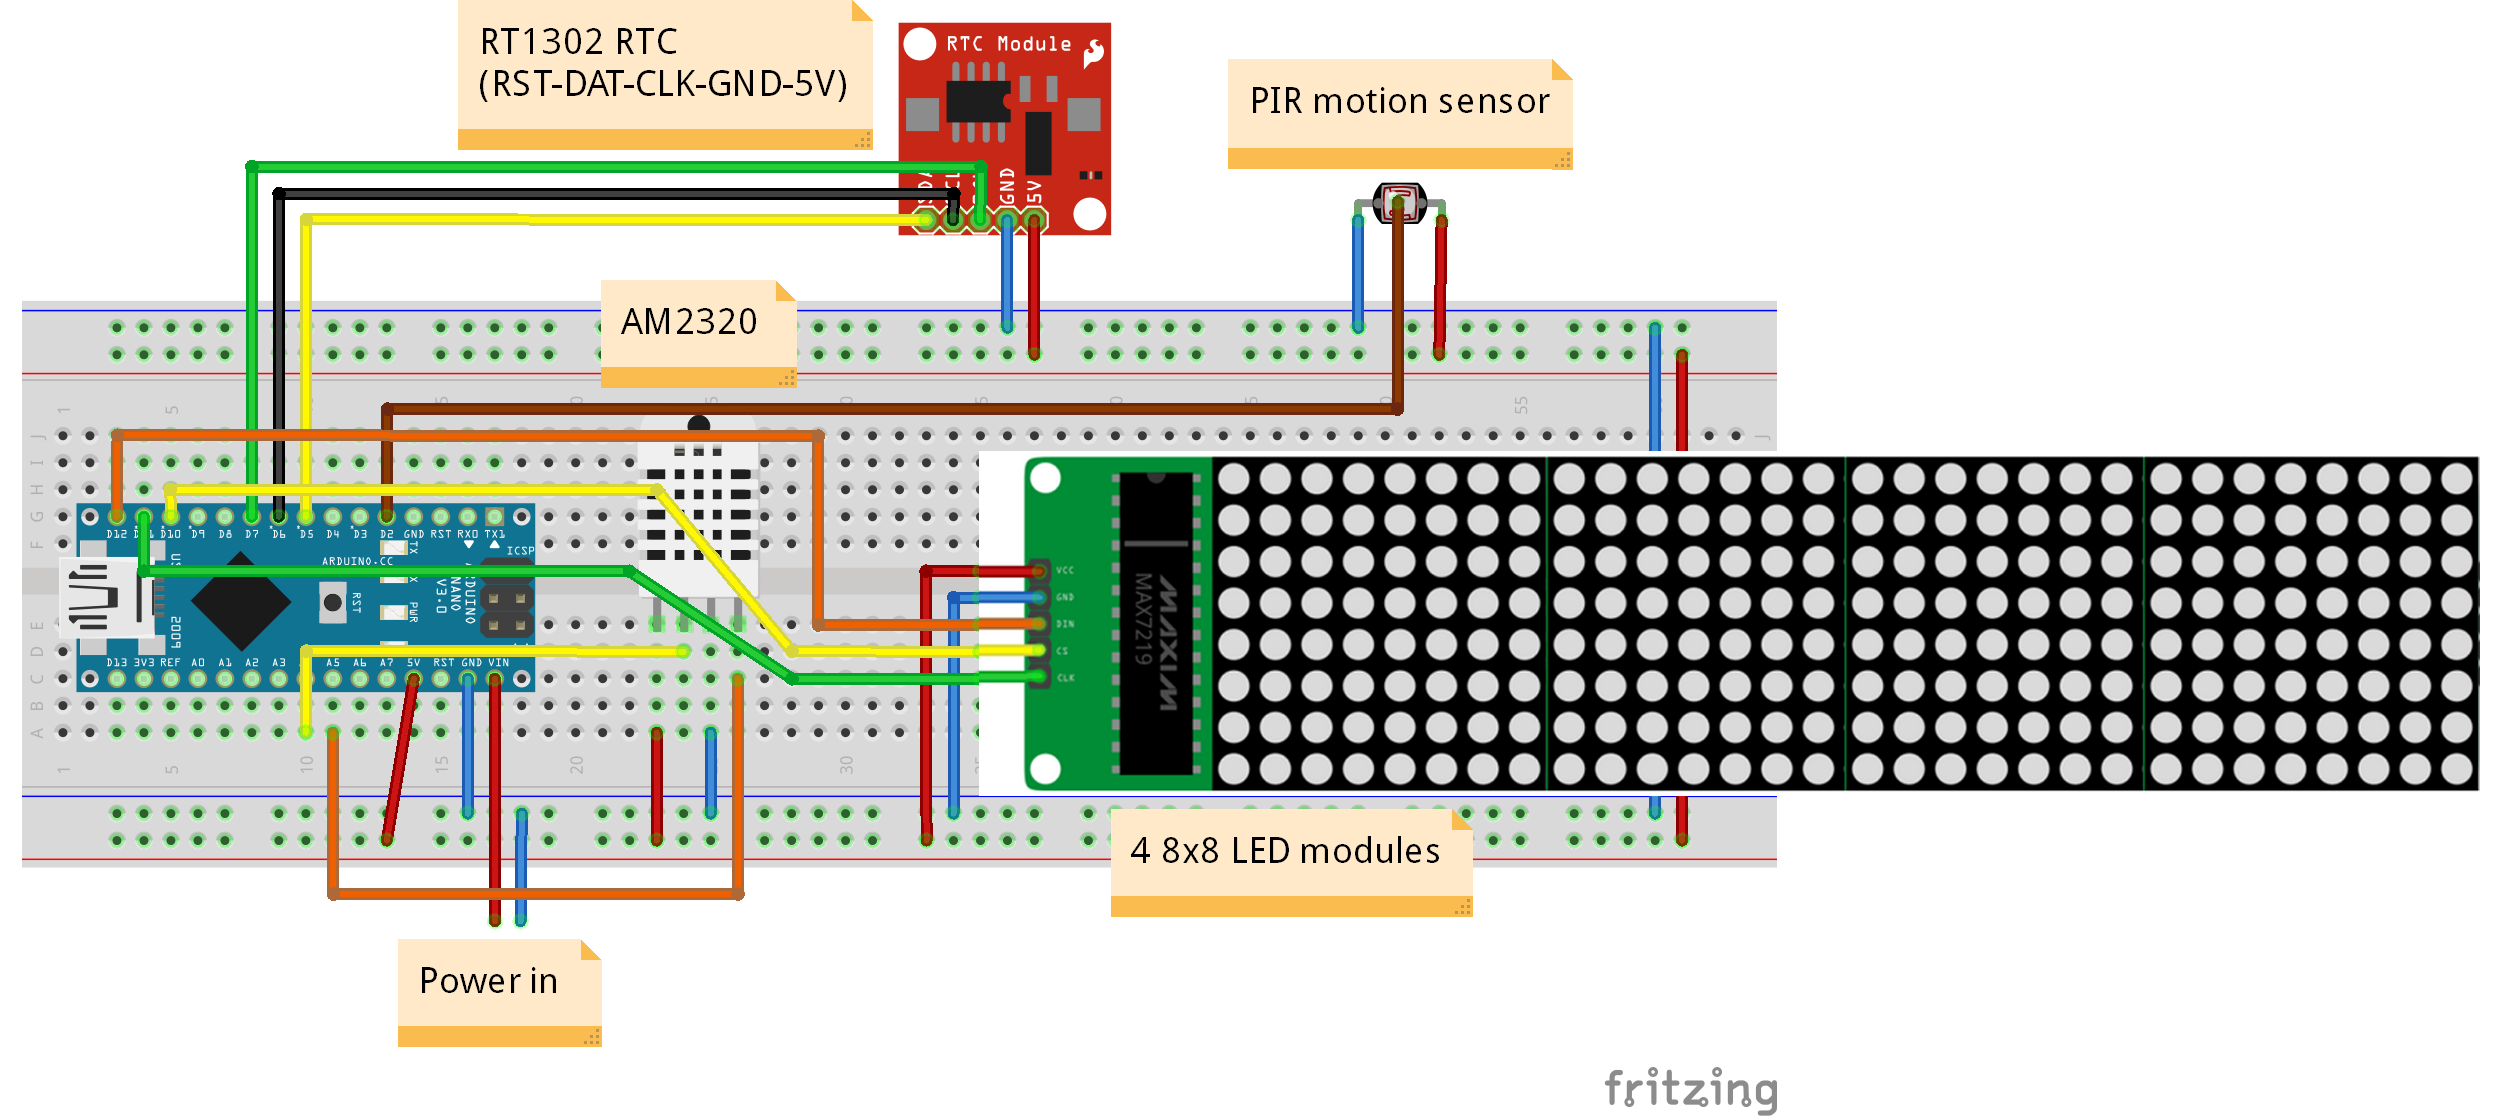 Led Running Message Display Circuit Diagram | Arduino 32x8 Led Matrix Info Display Hackster Io